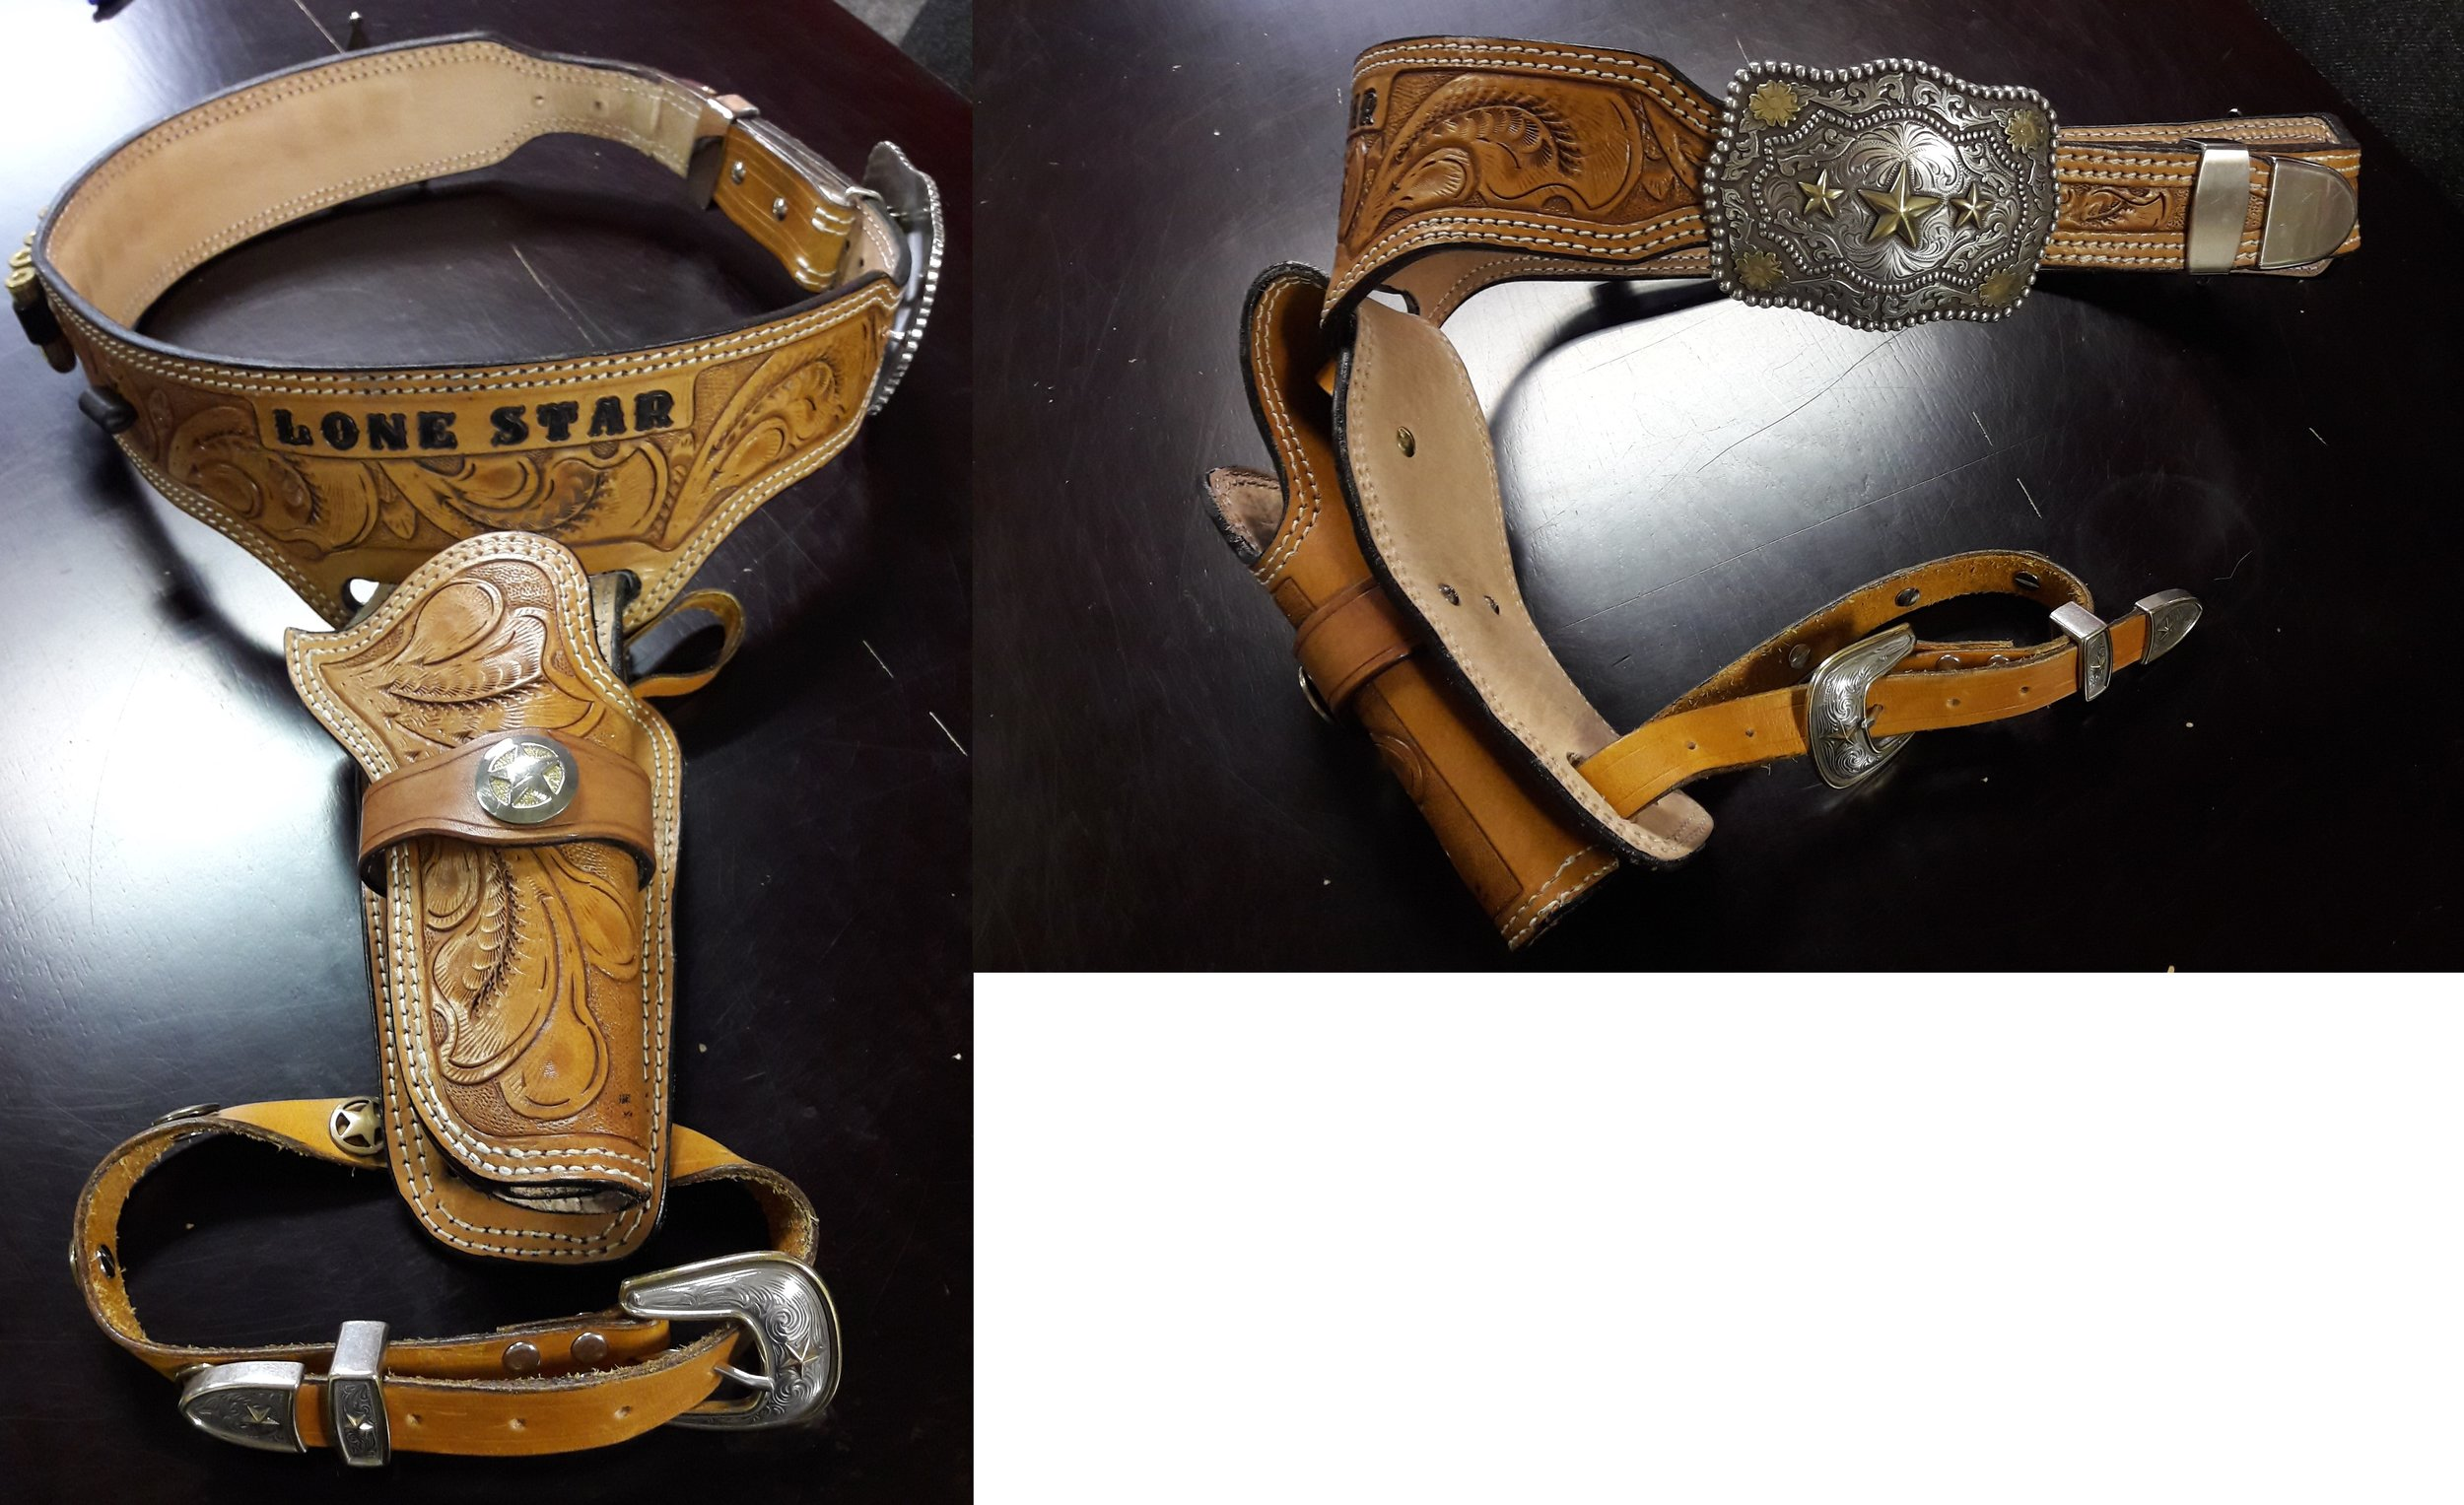 This lovely C&W rig needed a bit of adjustment.. - We have carried out a number of adjustments including added a new legstrap, altering the belt length to realign the buckle in the centre and adding depth to the holster.